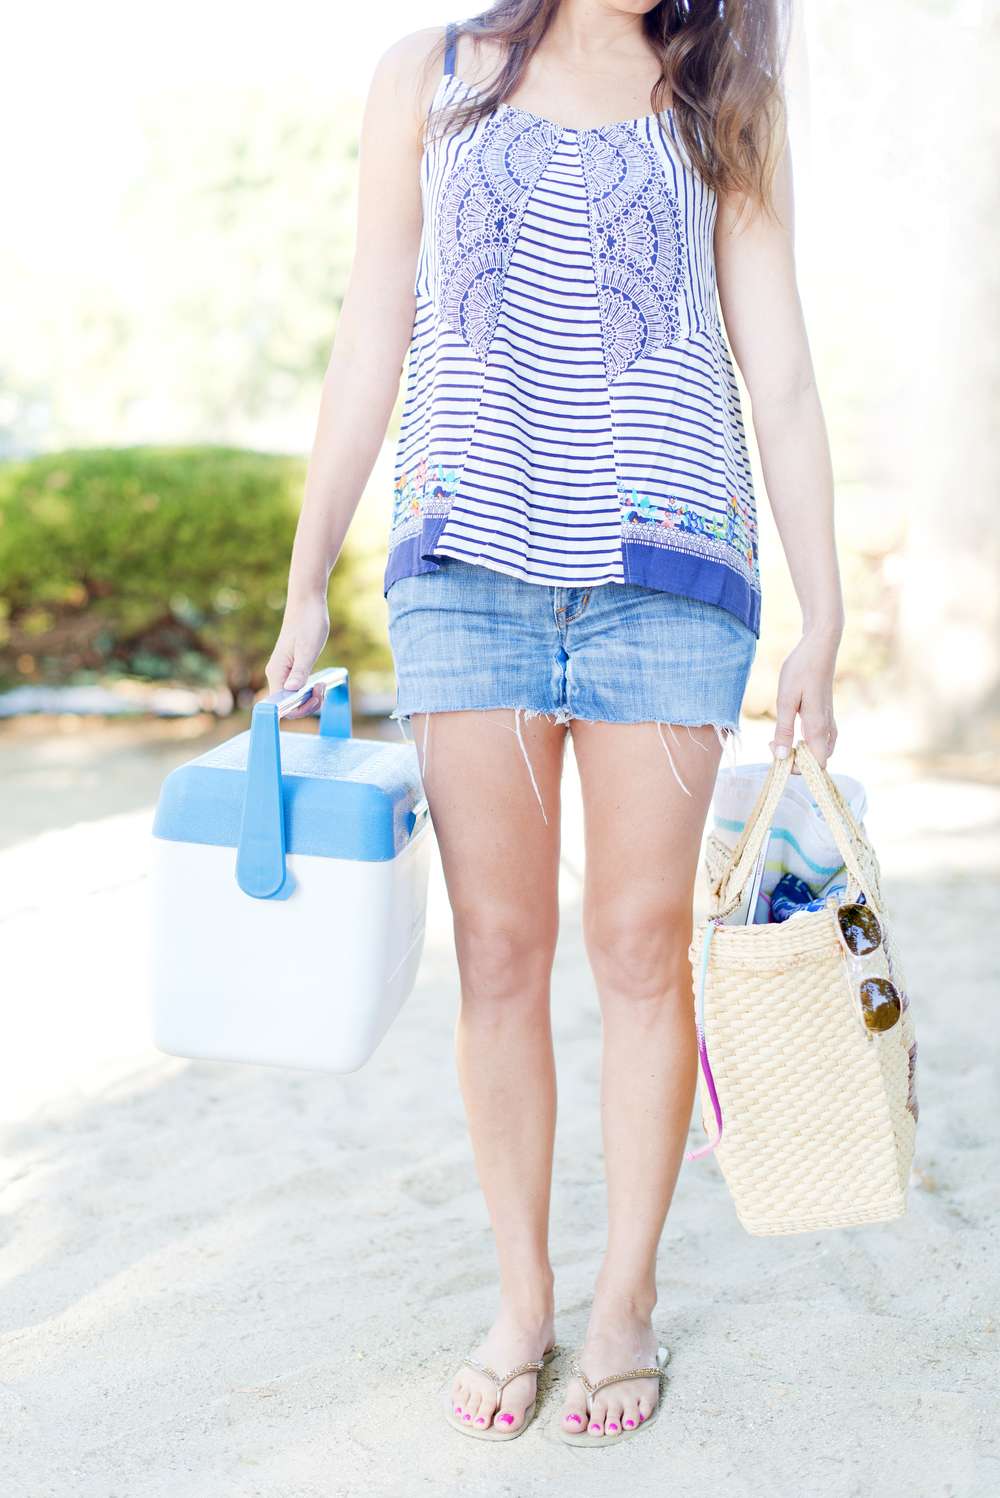 Tank Top: Harlow Cami from  Cabi  Summer Line 2014  Shorts: Homemade cutoffs  Flip Flops:  Havaianas